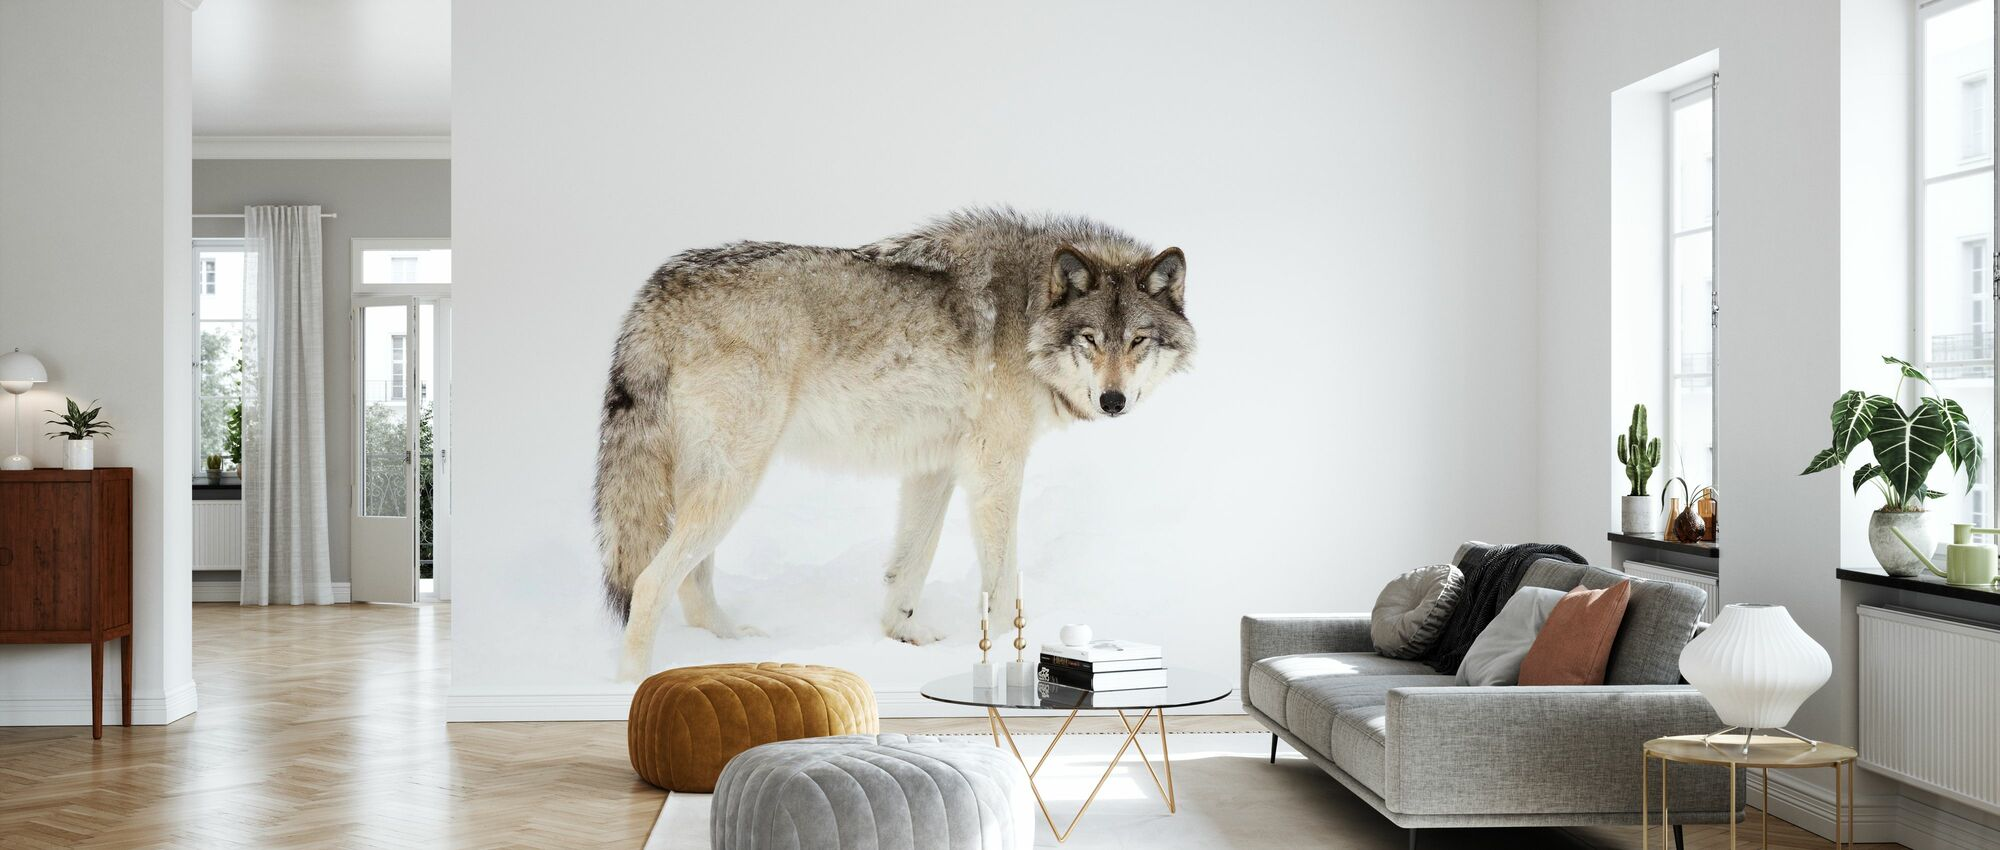 Canadian Timber Wolf Walking Through The Snow - Wallpaper - Living Room